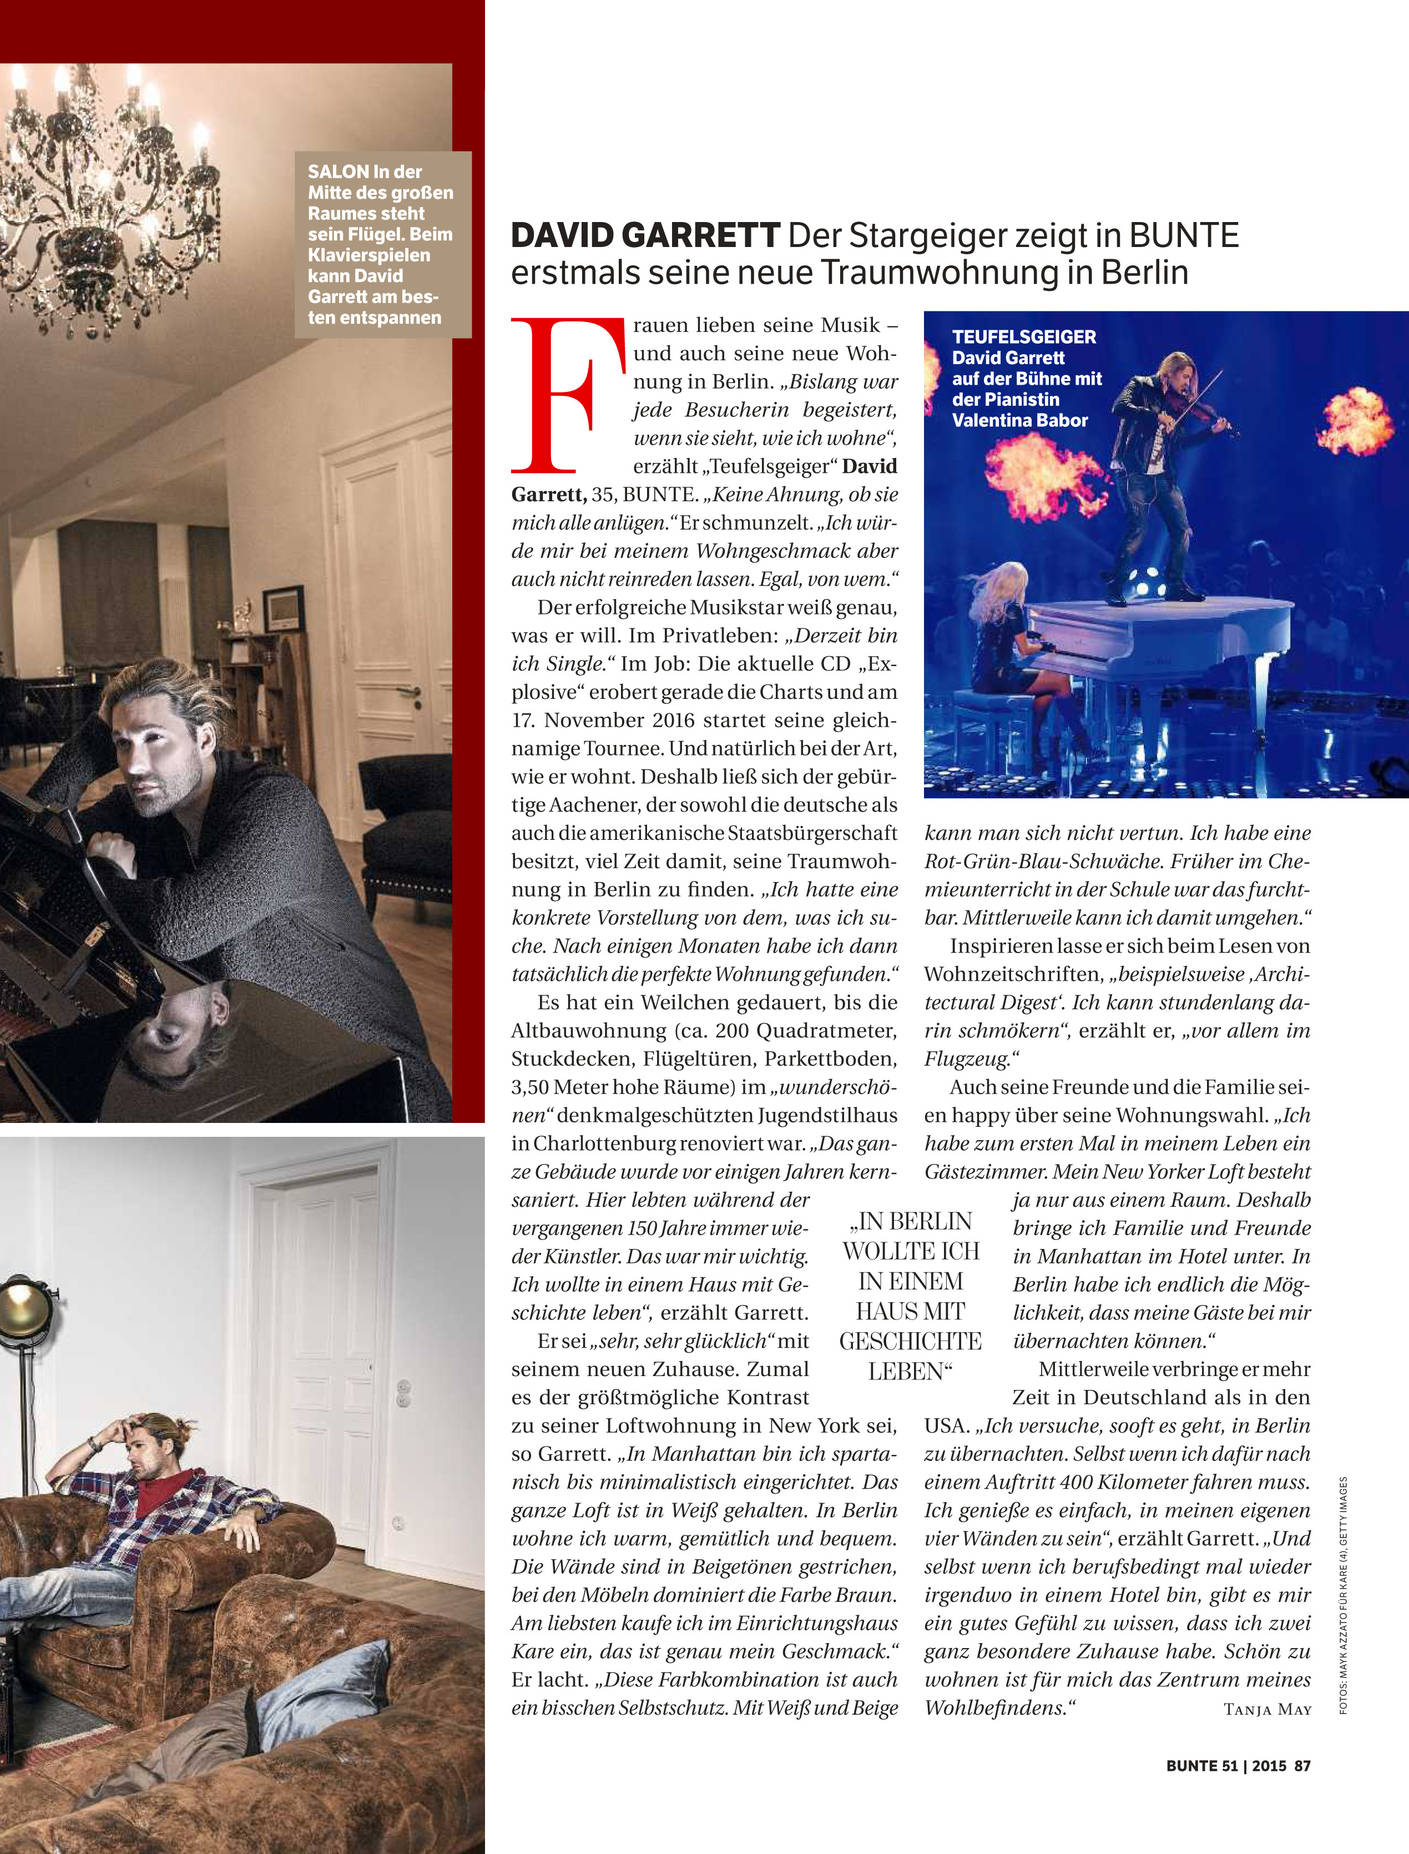 David Garrett homestory. In edition 51/2015 of BUNTE, the star violinist chats about his interior: In Berlin he lives warm, cozy and comfortable with KARE.